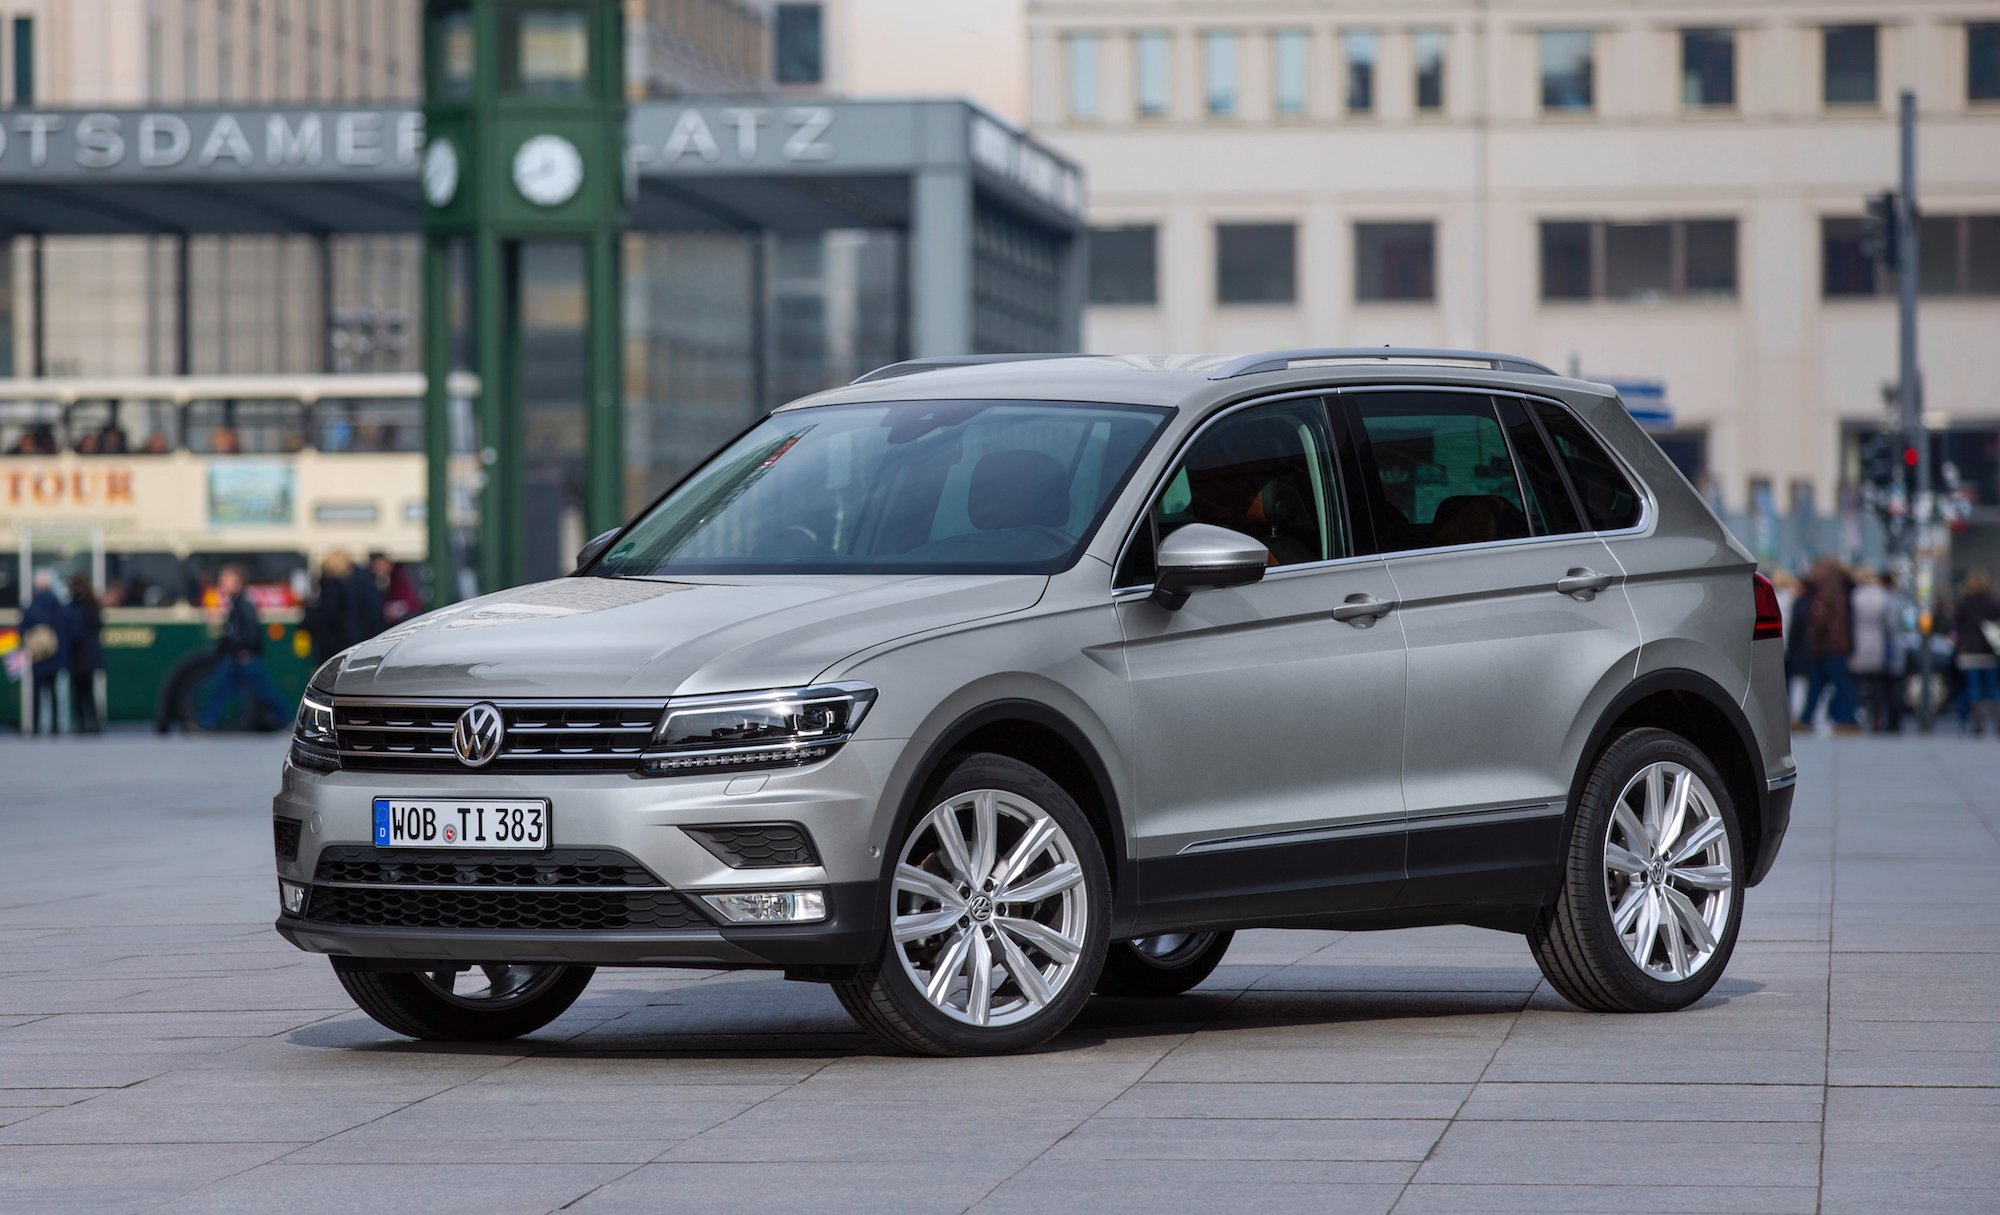 2016 Volkswagen Tiguan Review - Photos